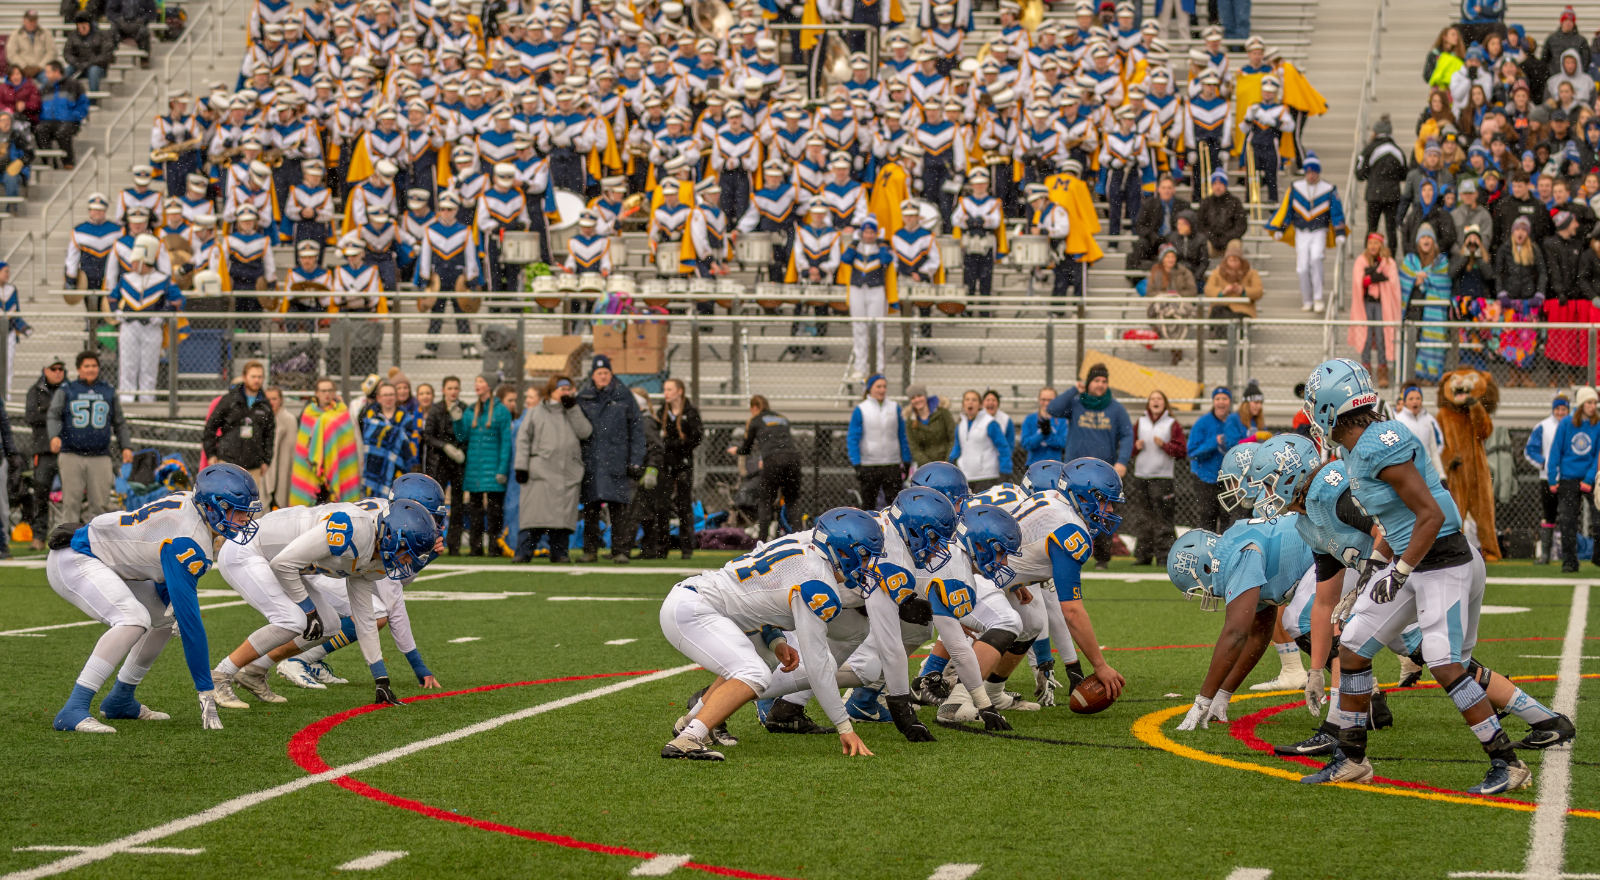 Playoff Football: Chemics host Sailors in rematch of 2018 Semi